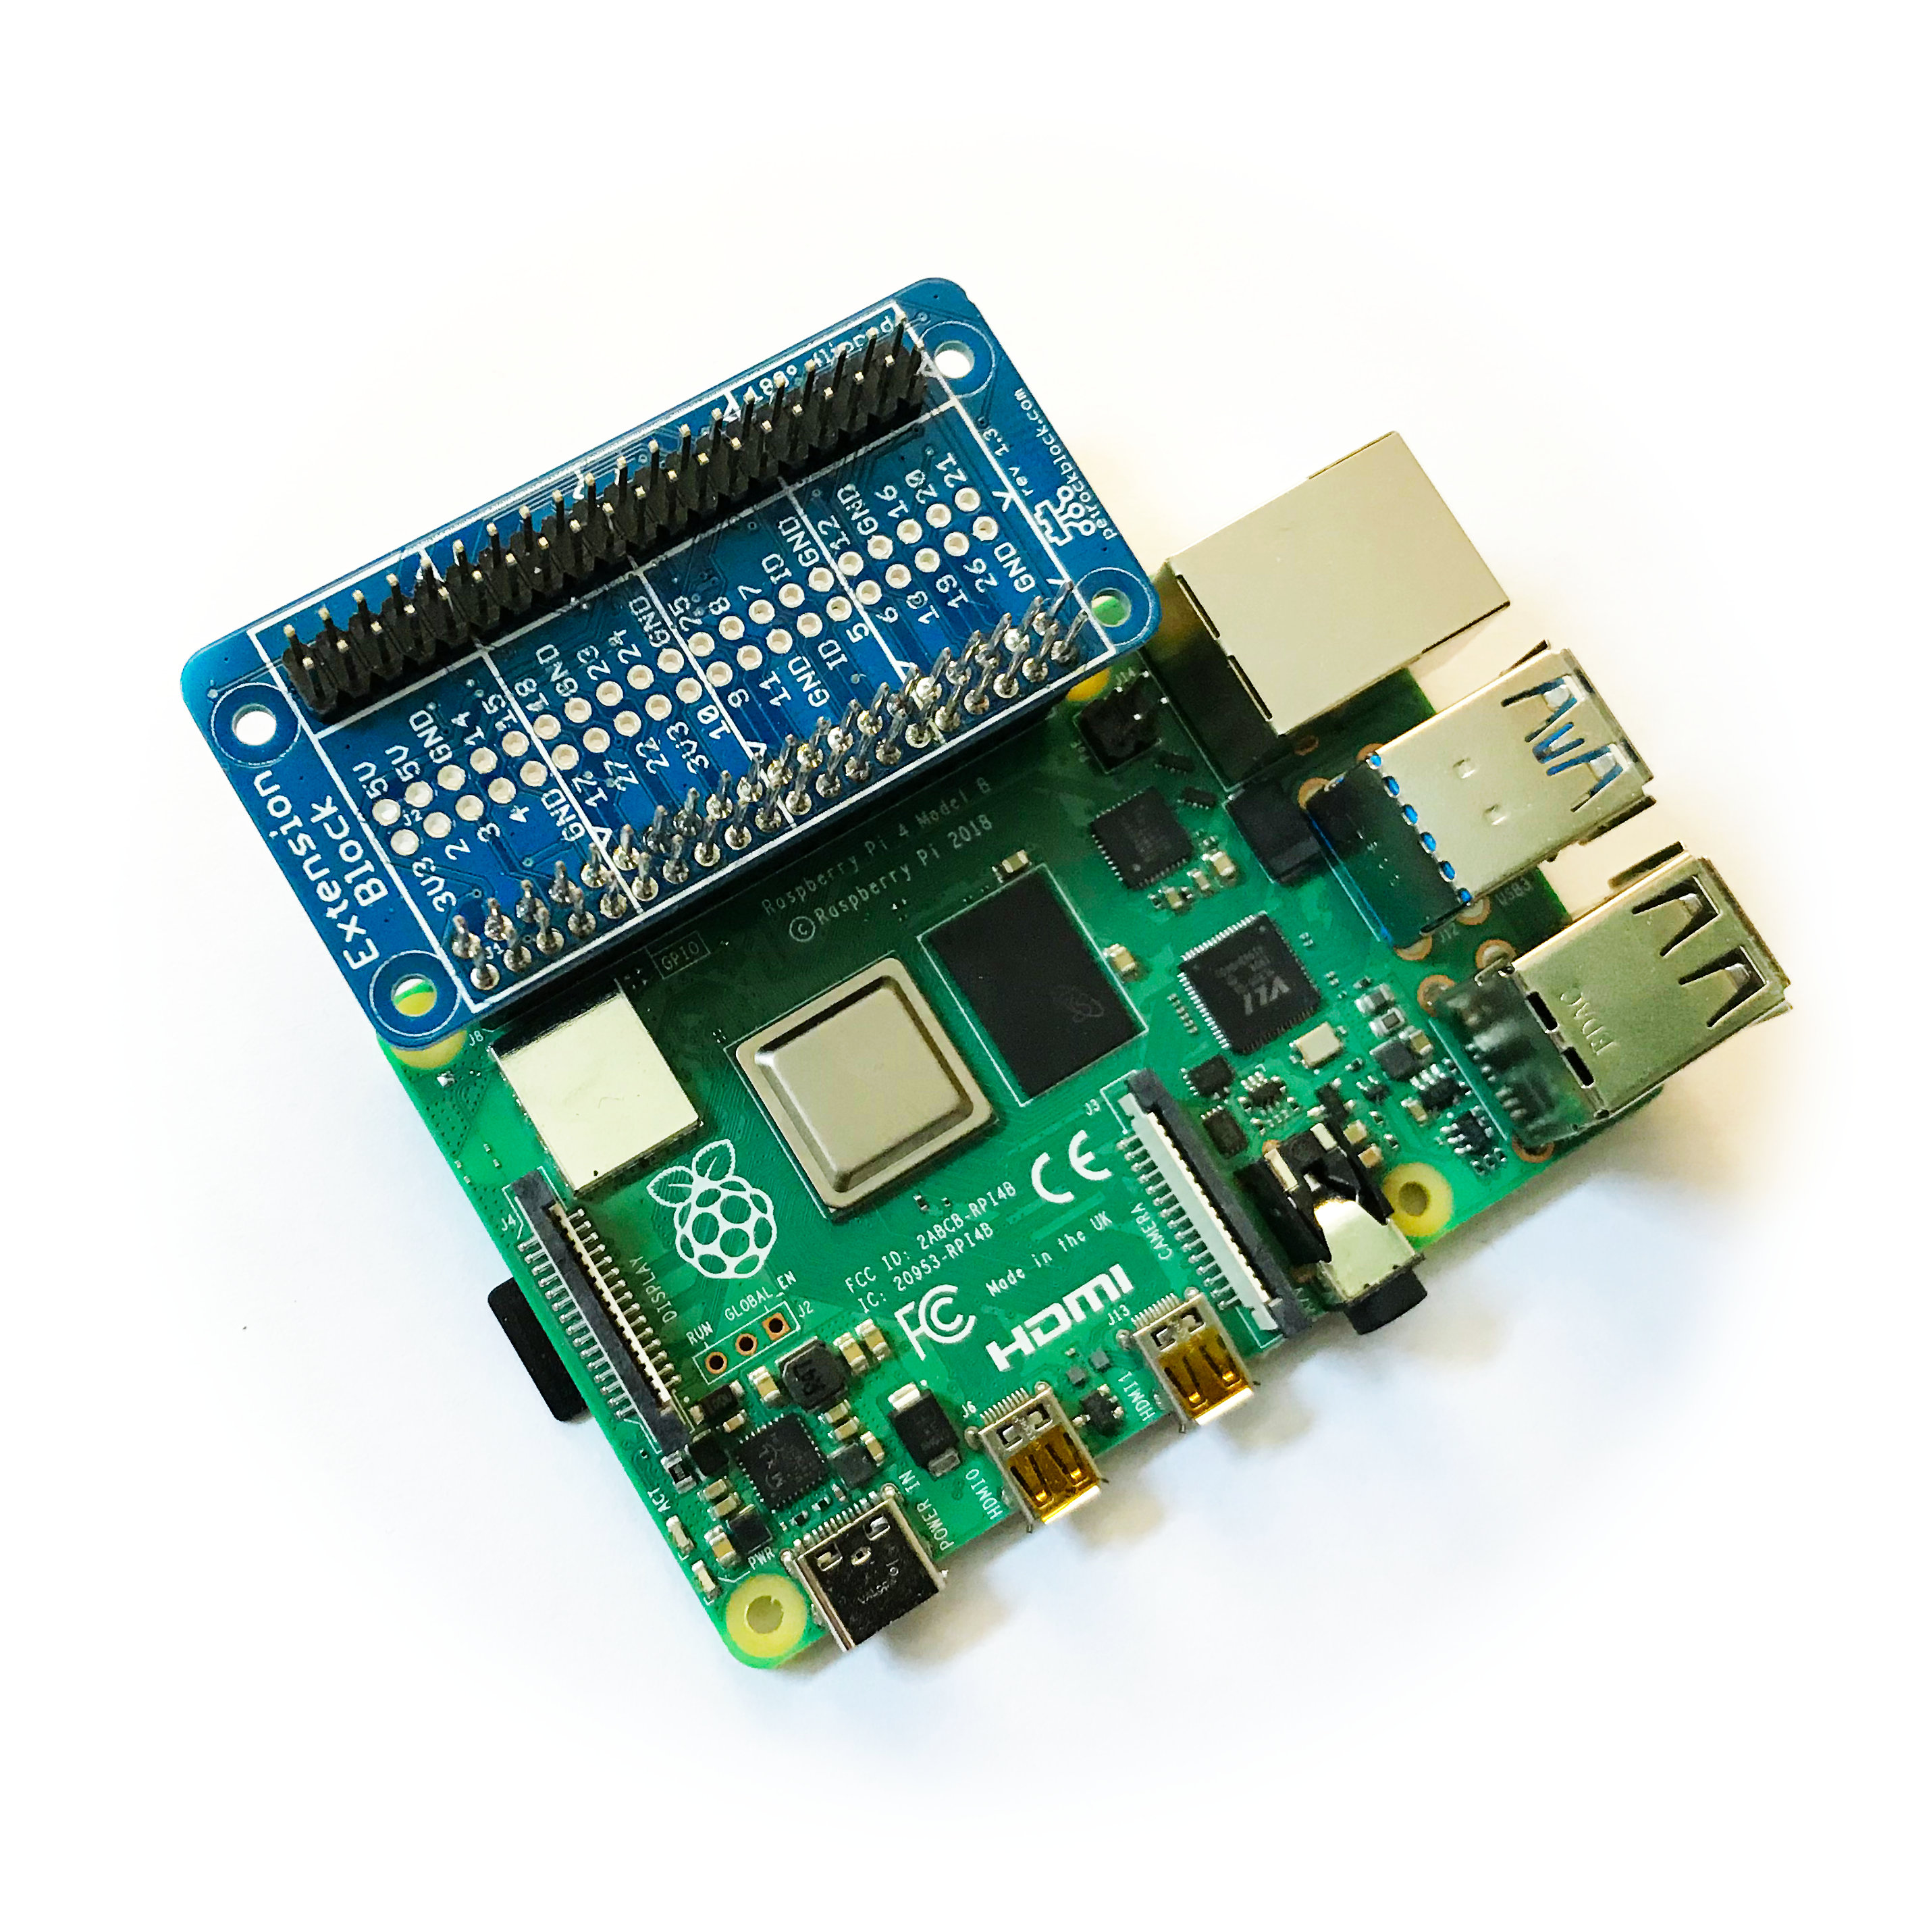 ExtensionBlock attached to Raspberry Pi